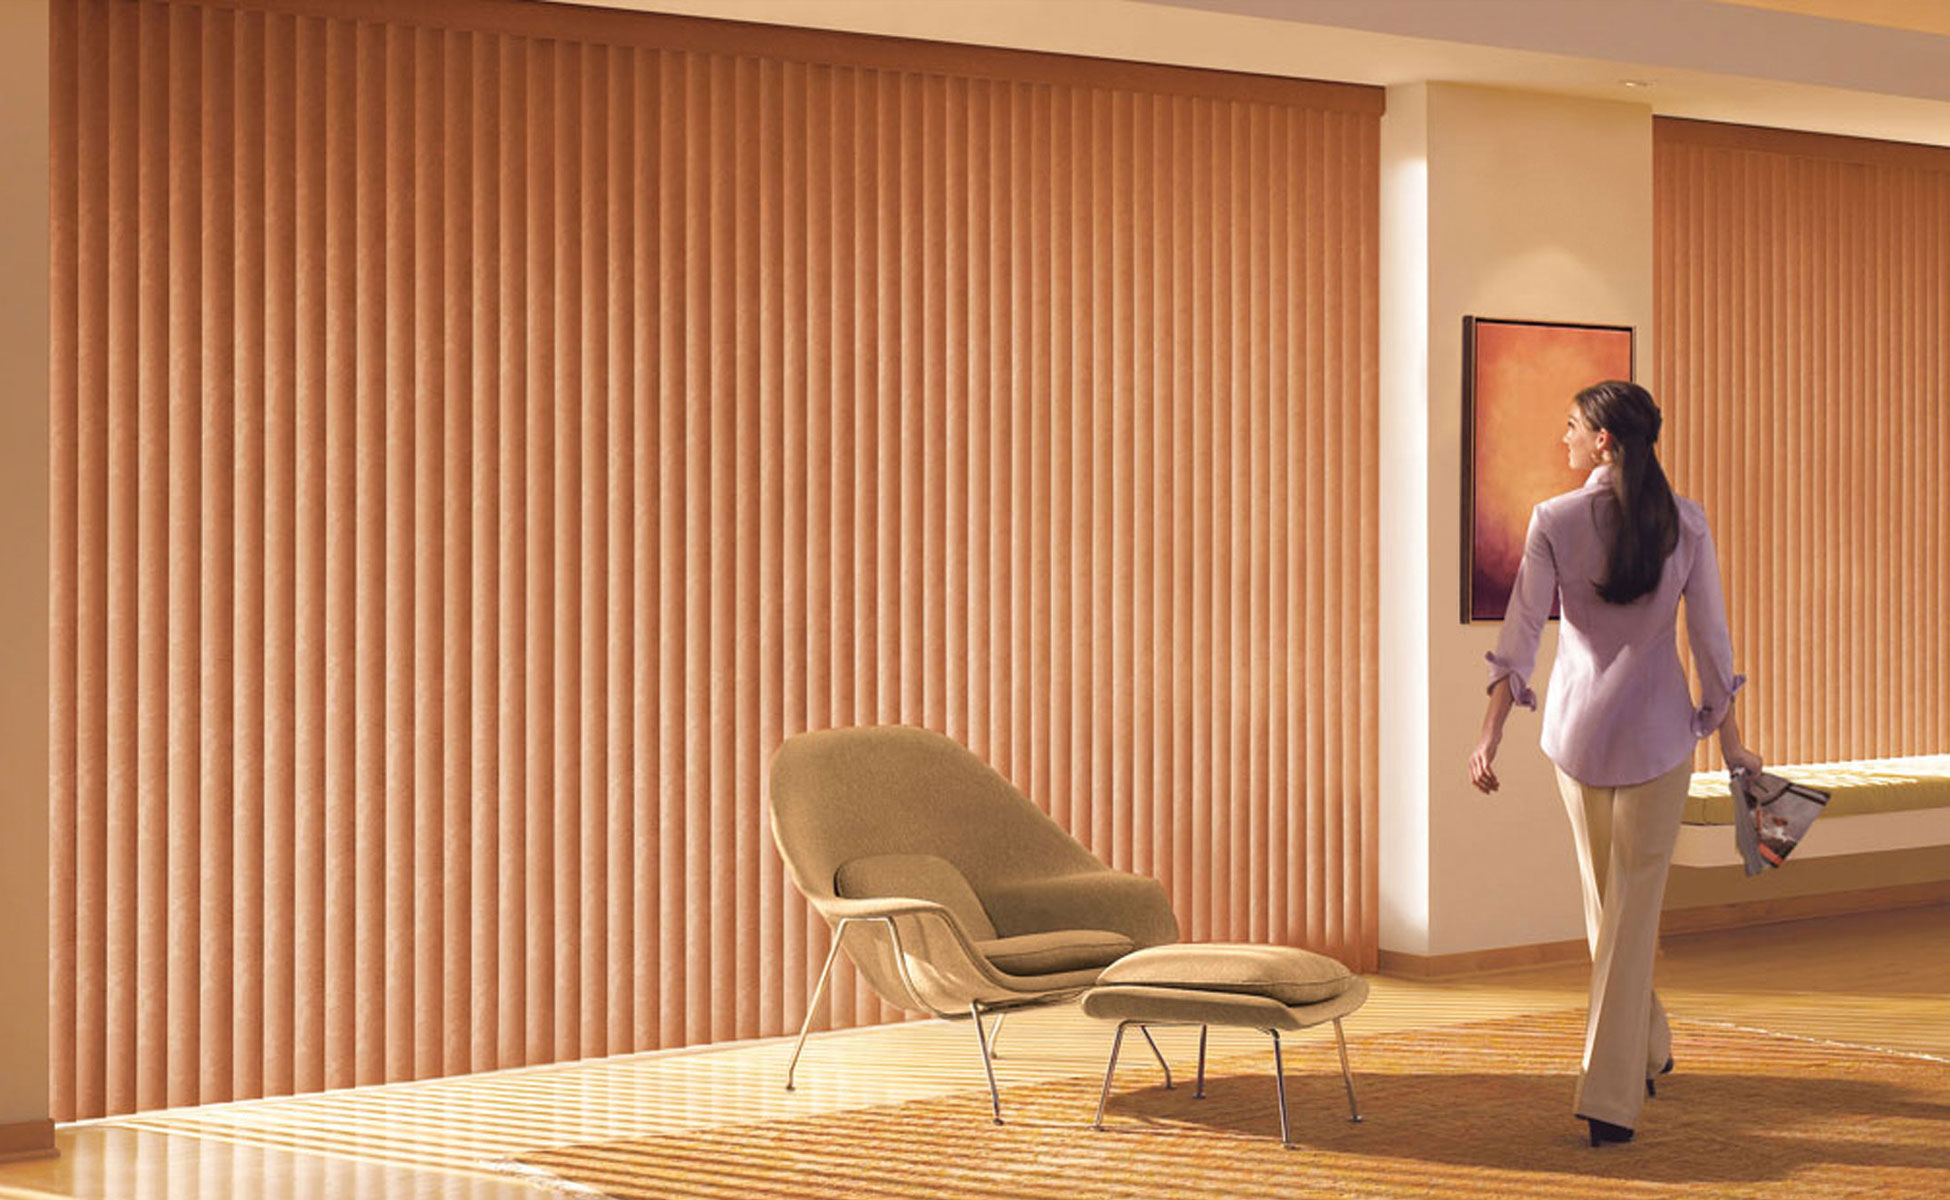 Wood Wallpapers Shops In Coimbatore Wood Wallpapers